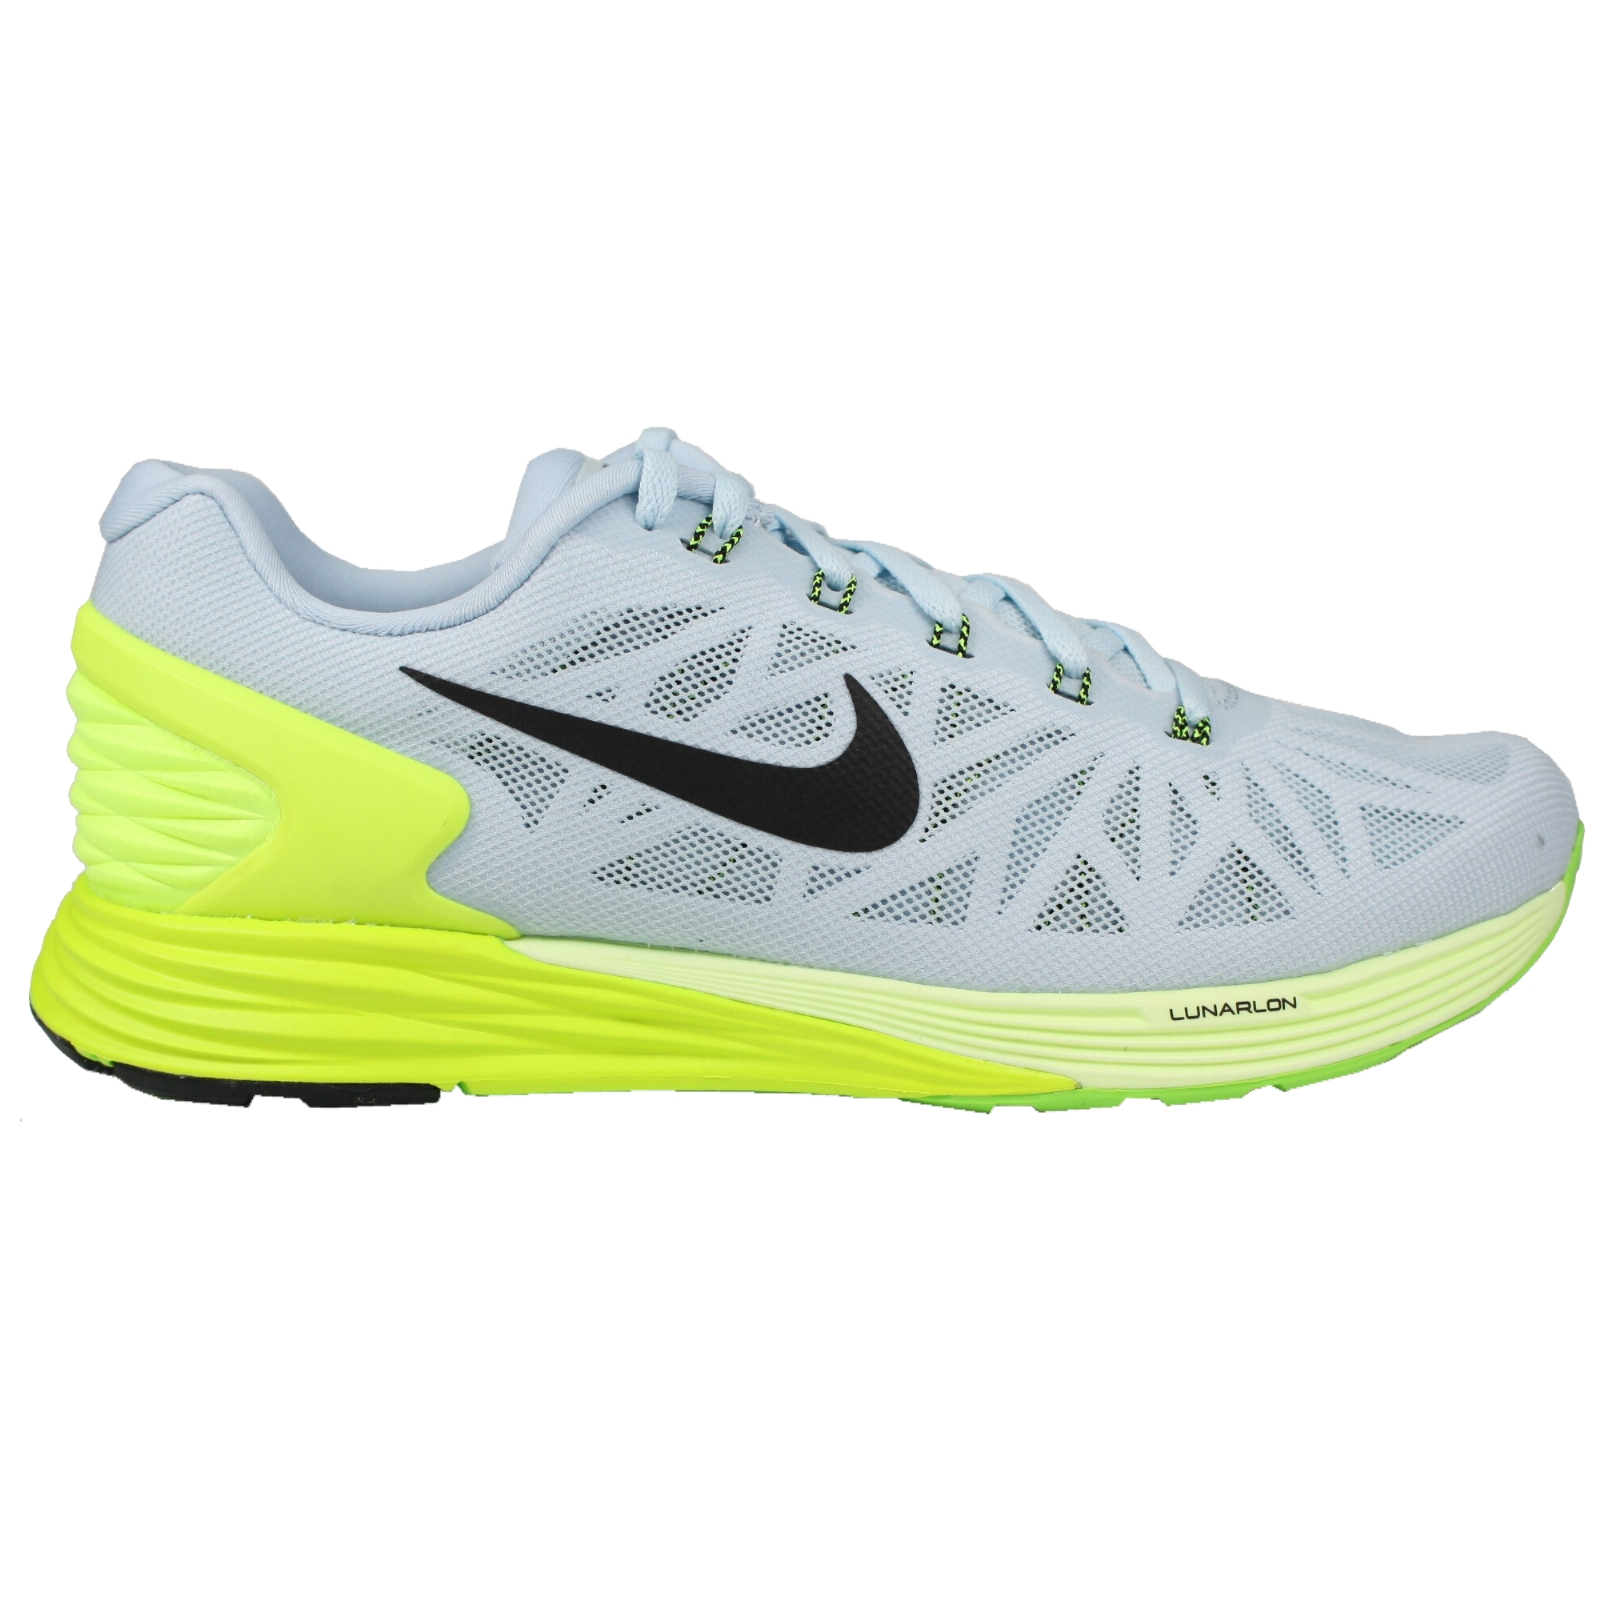 nike lunarglide 6 schuhe laufschuhe joggingschuhe. Black Bedroom Furniture Sets. Home Design Ideas